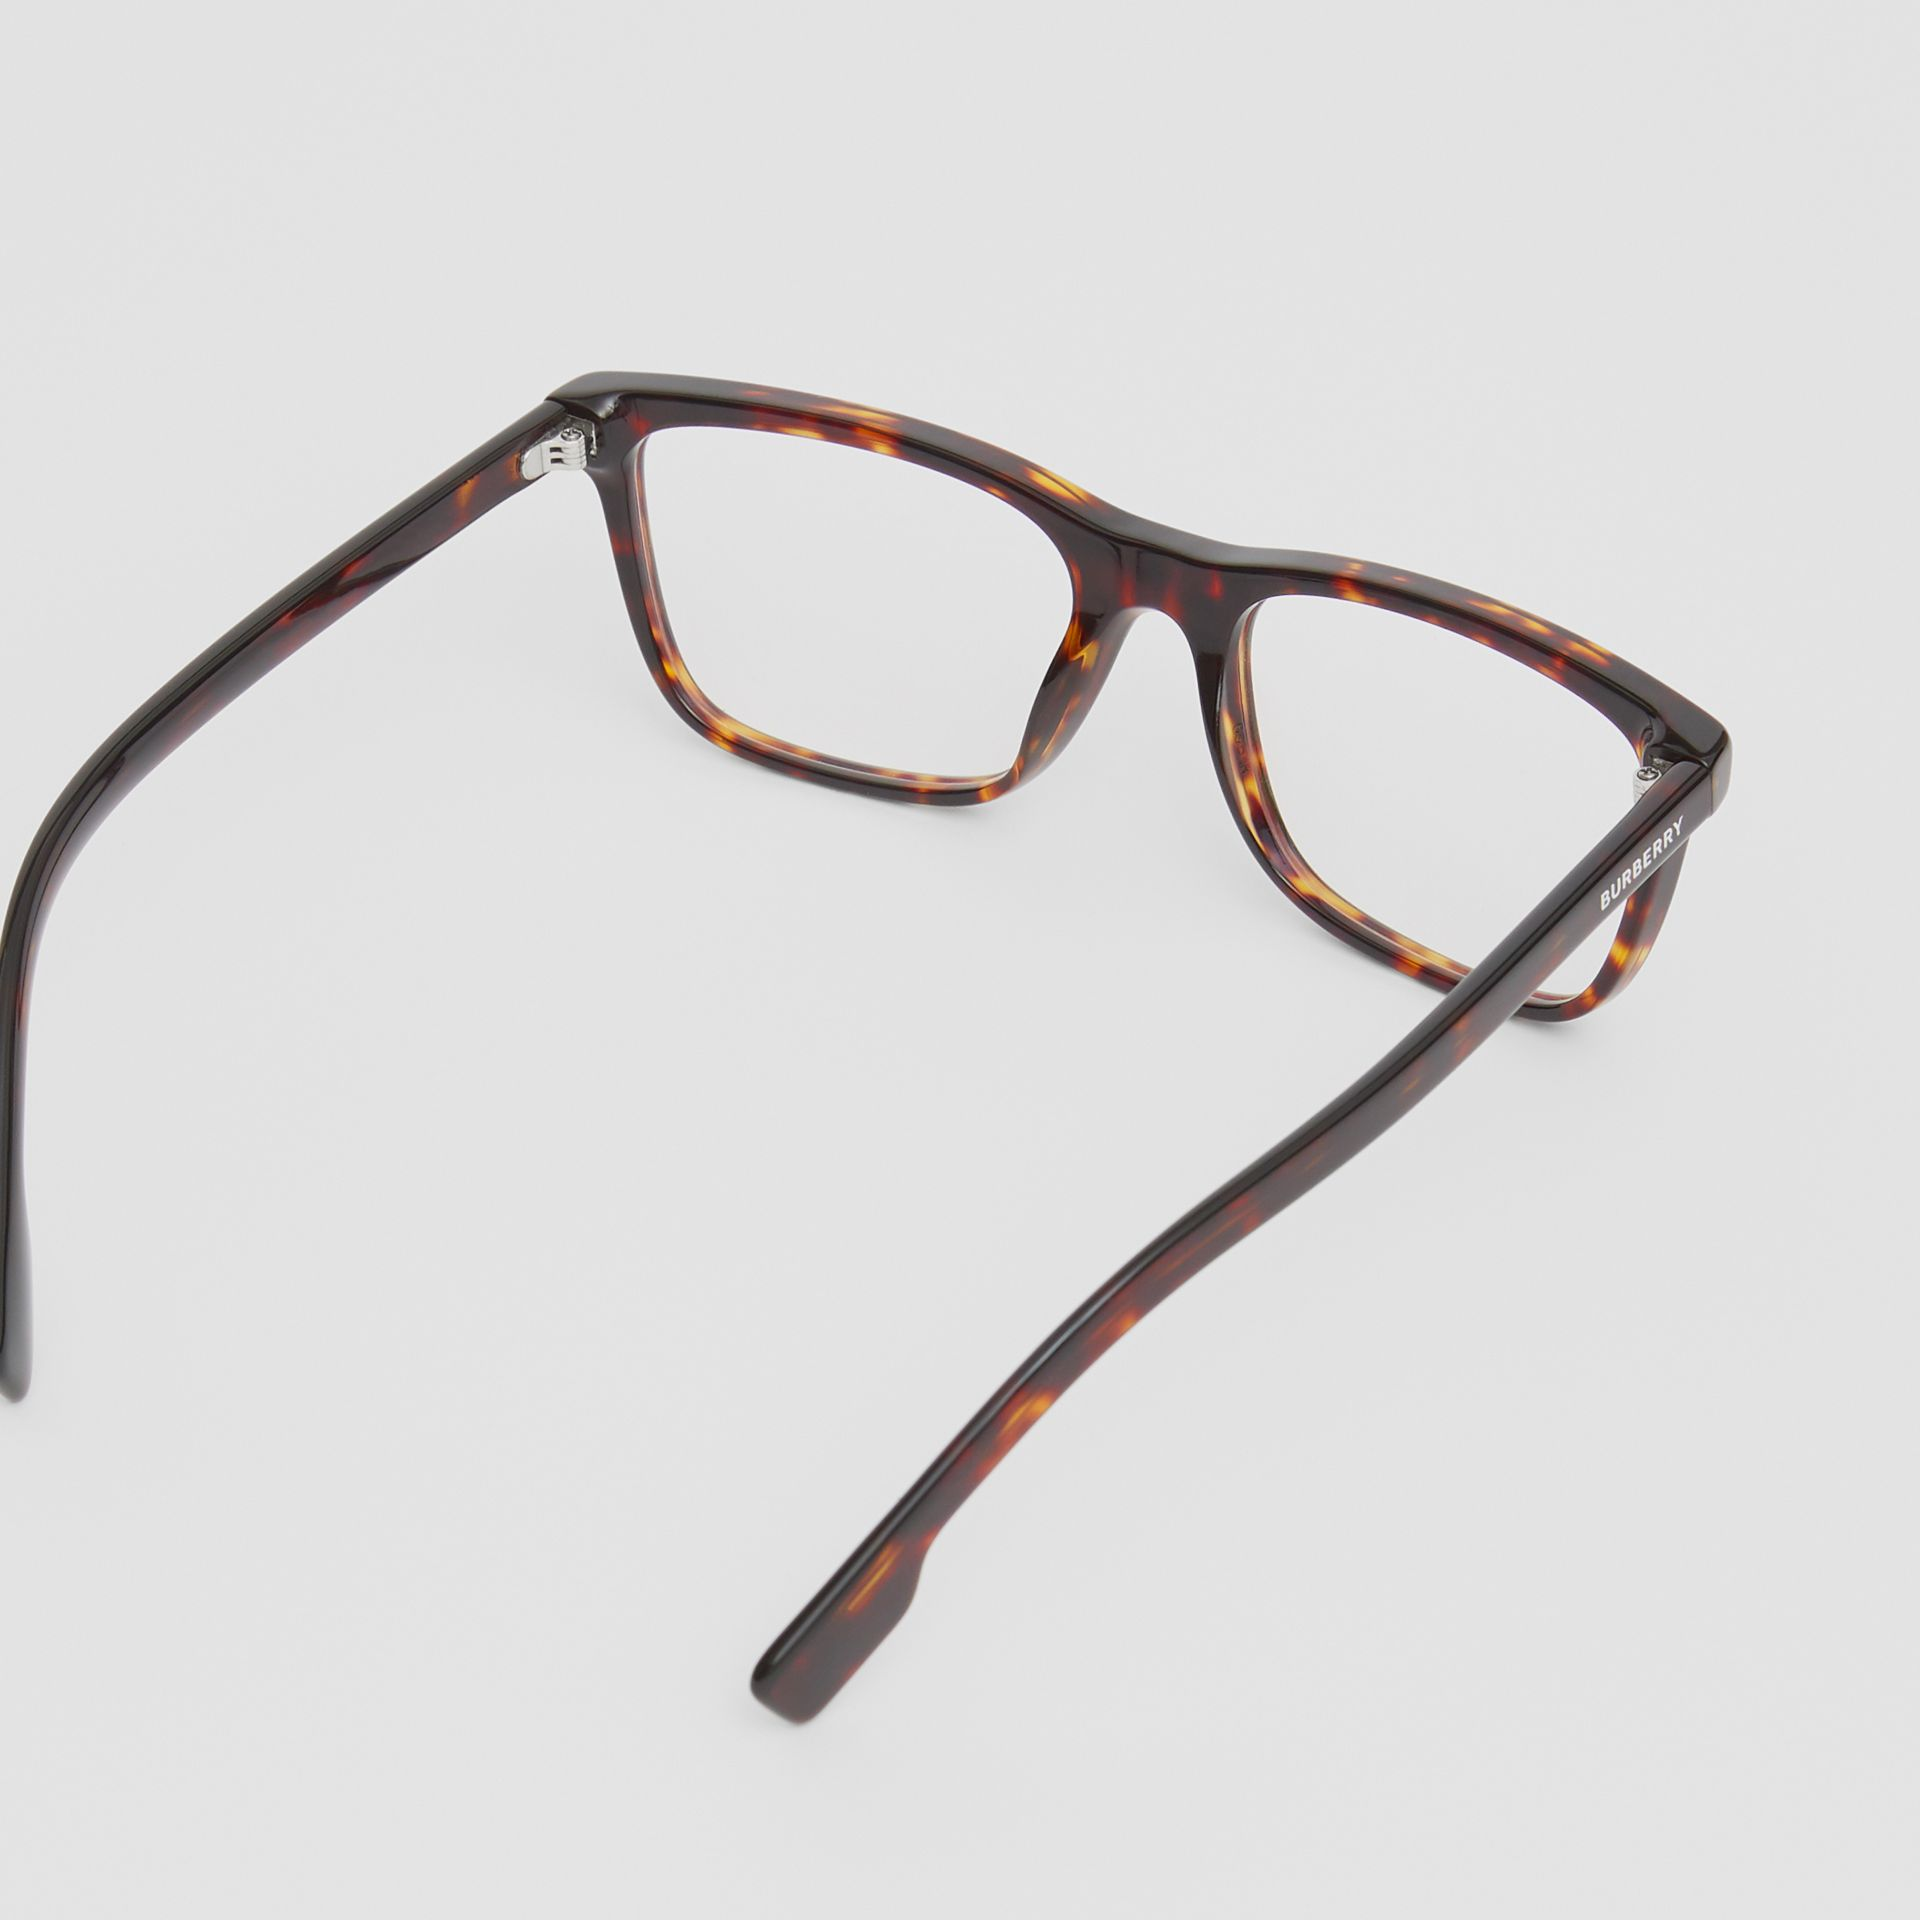 Rectangular Optical Frames in Tortoiseshell - Men | Burberry Singapore - gallery image 3